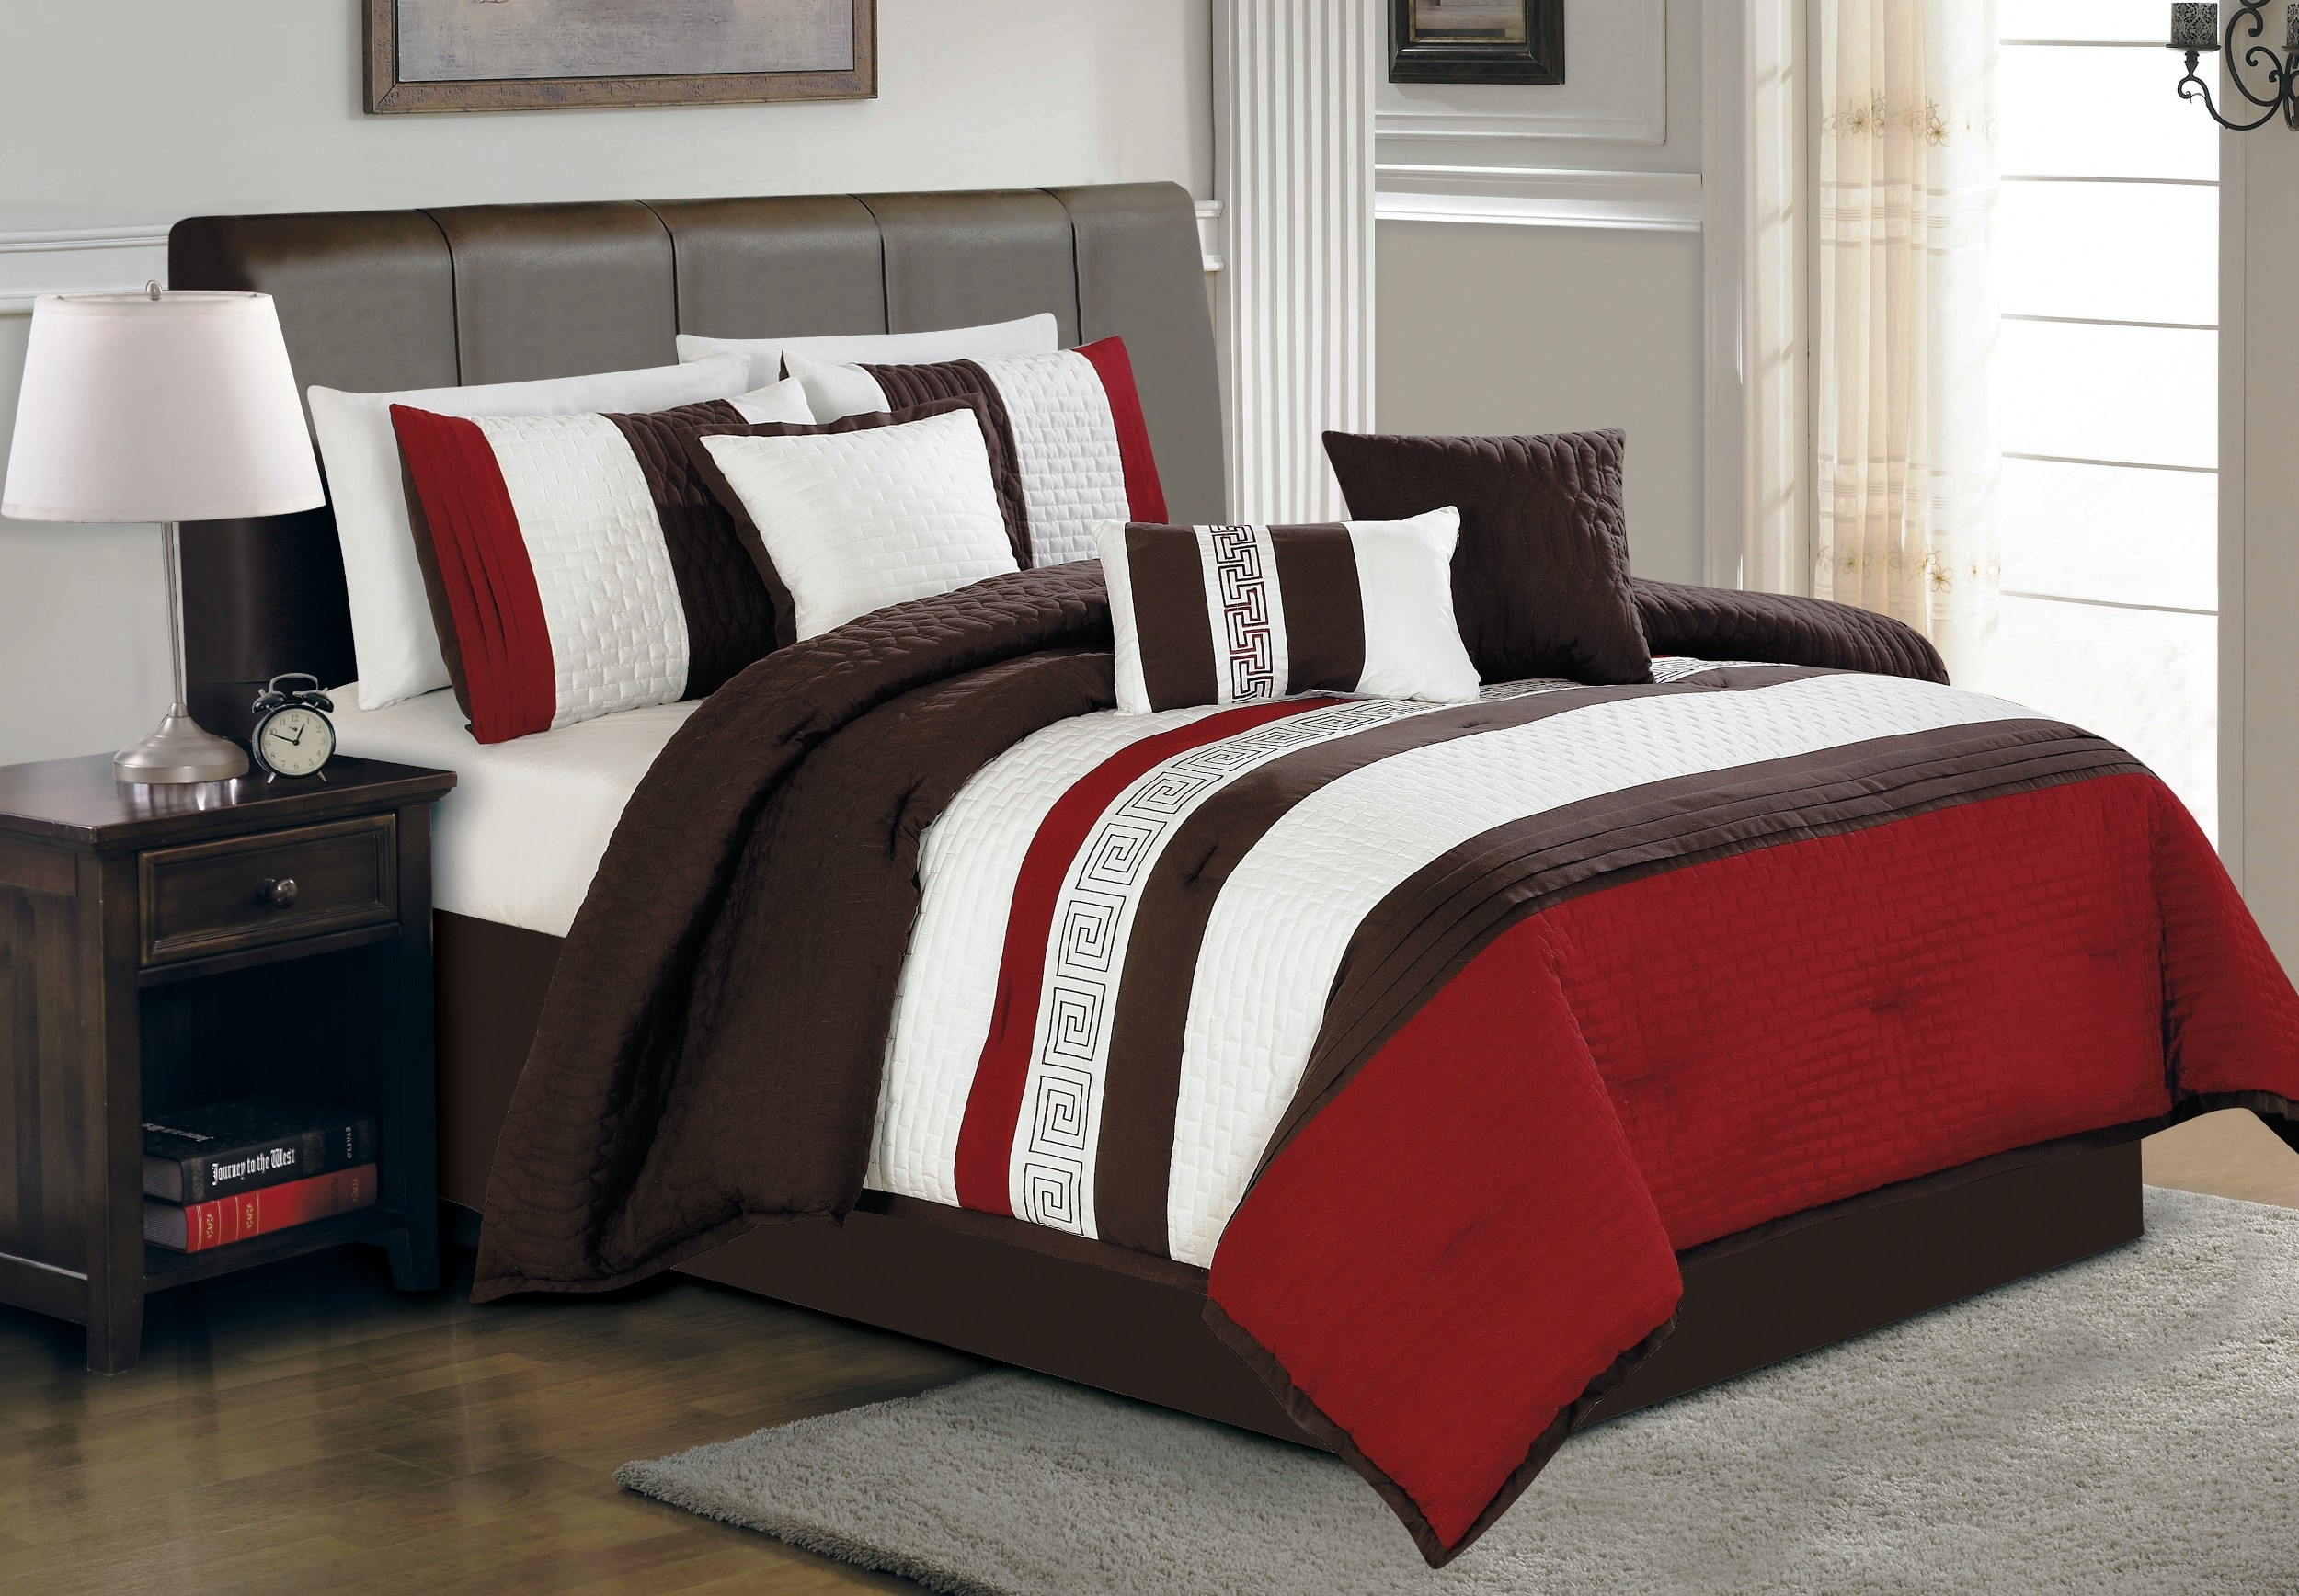 Simple bed sheets pattern - Colorful Bed Sheet With Brown Bed Frame And Cabinet Hardwood Floor With Grey Rug